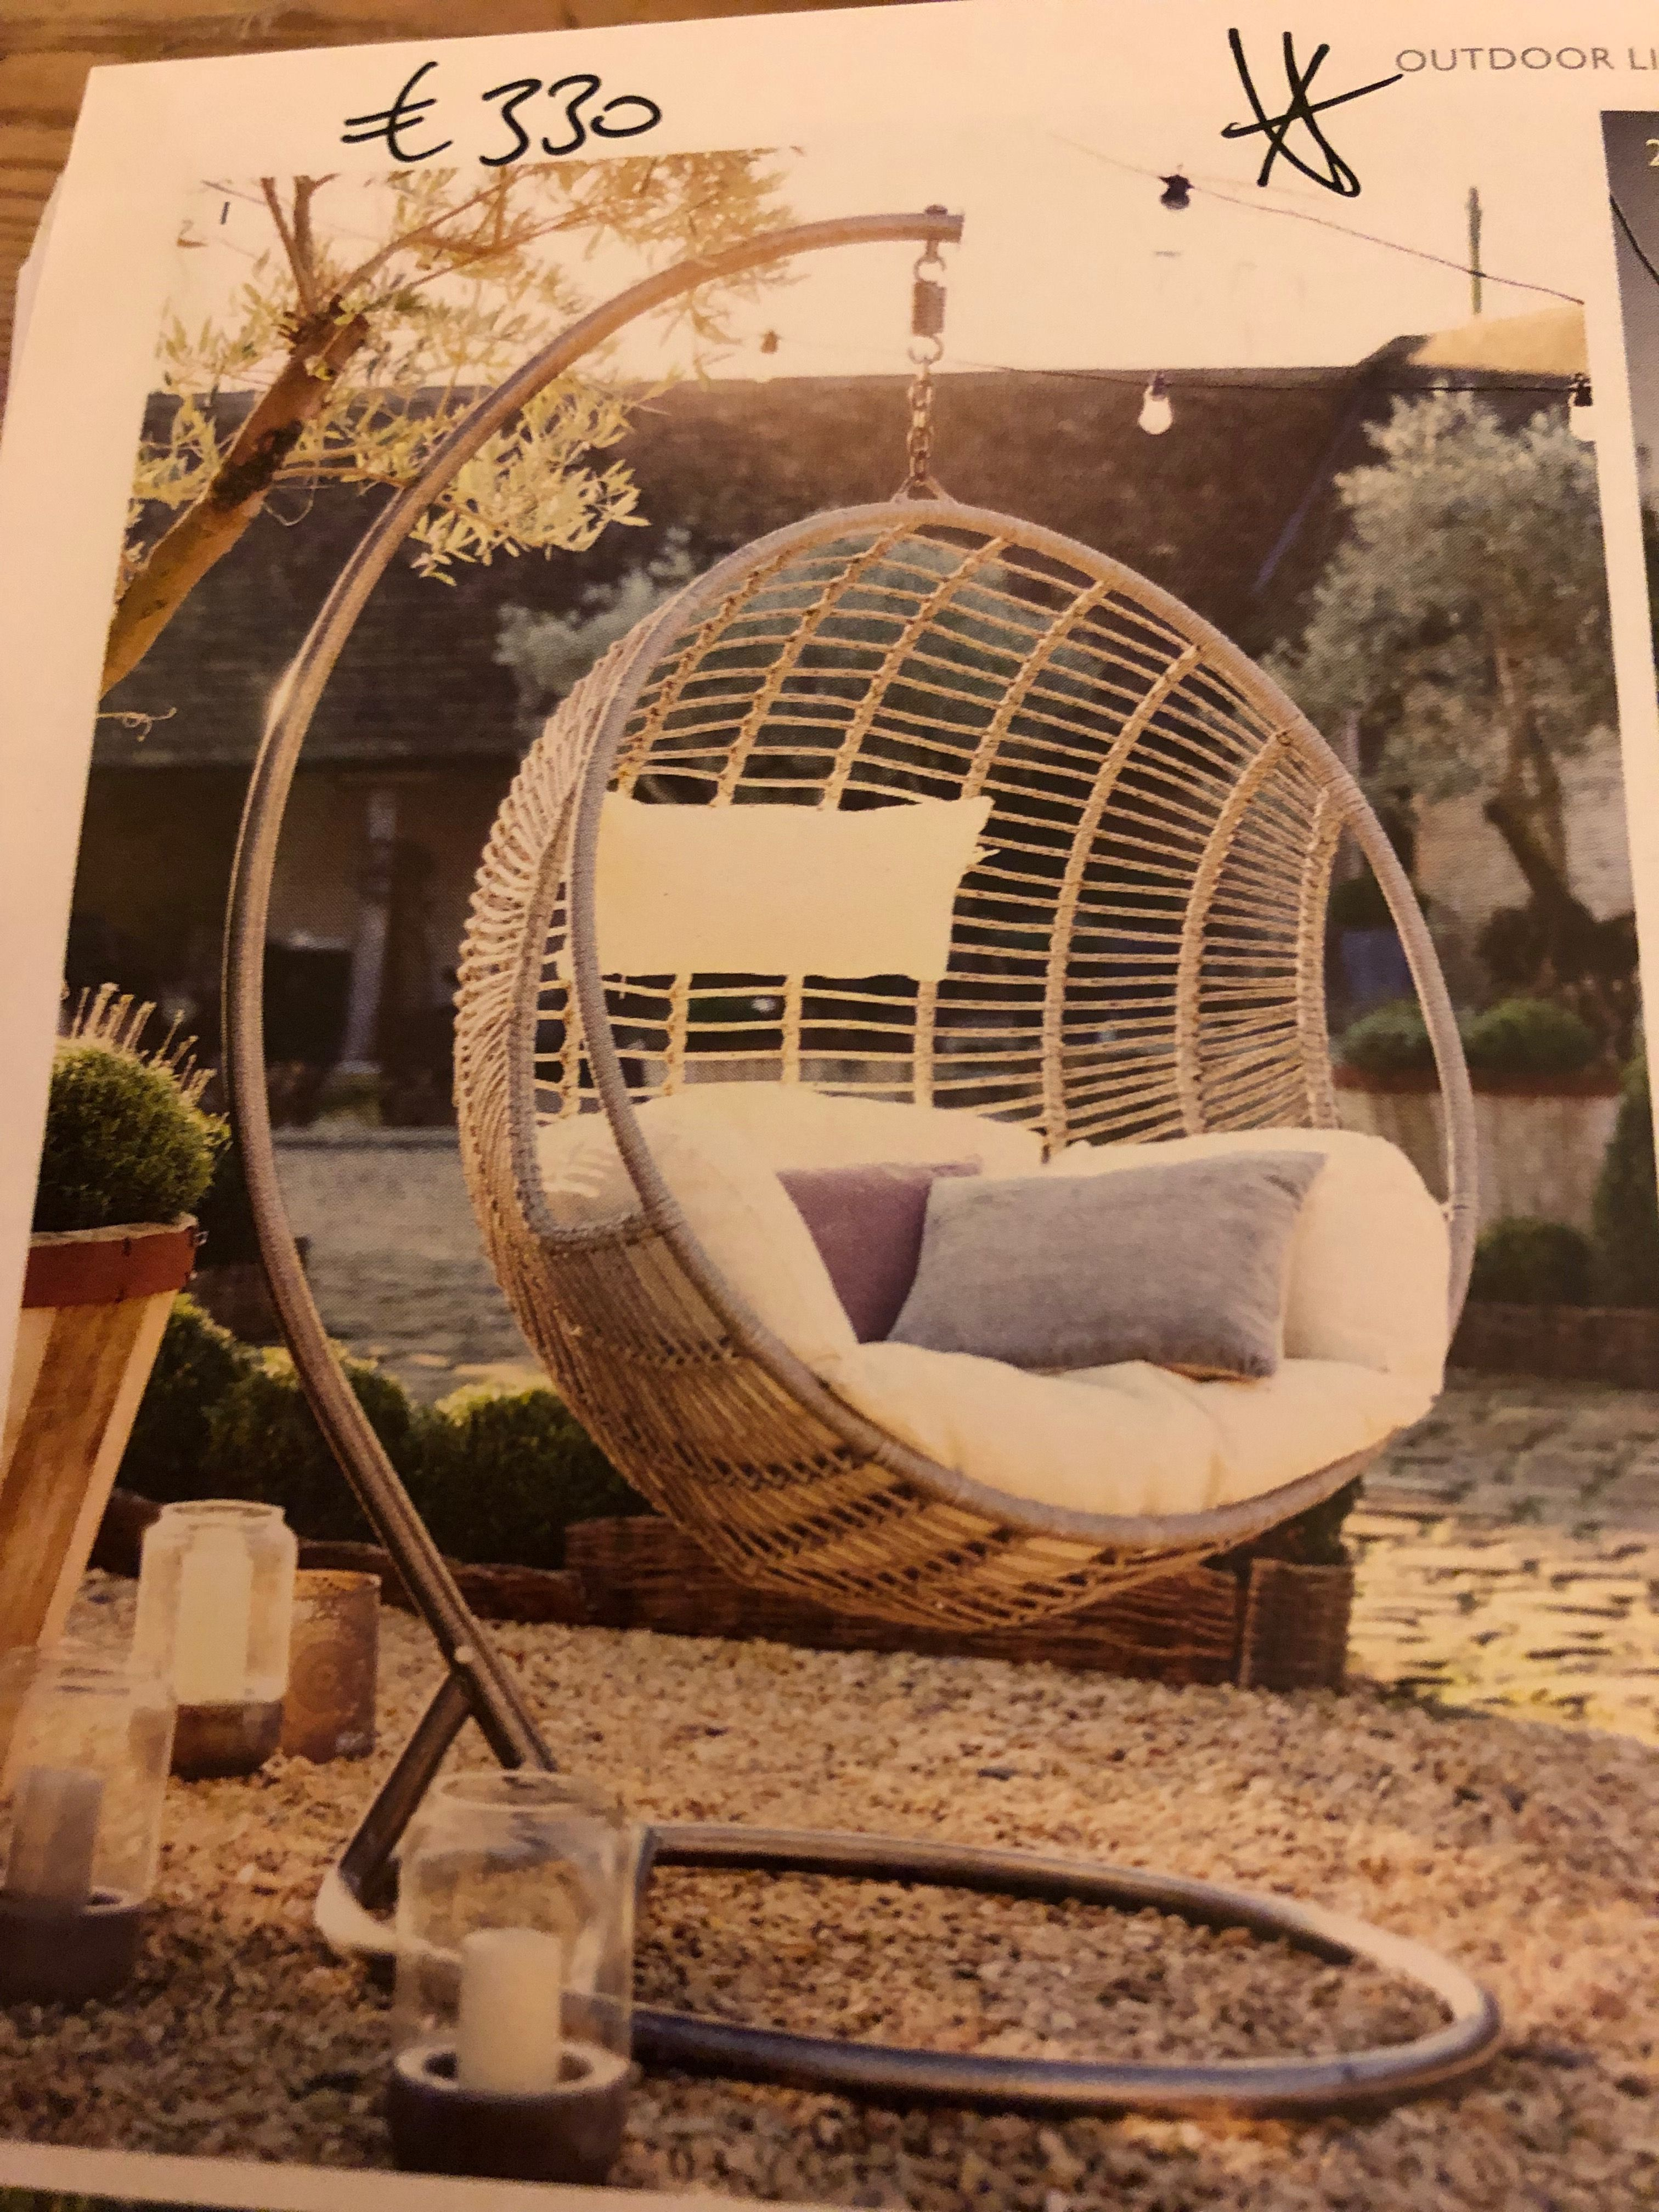 Pin by Susie Kew on Garden Hanging chair outdoor